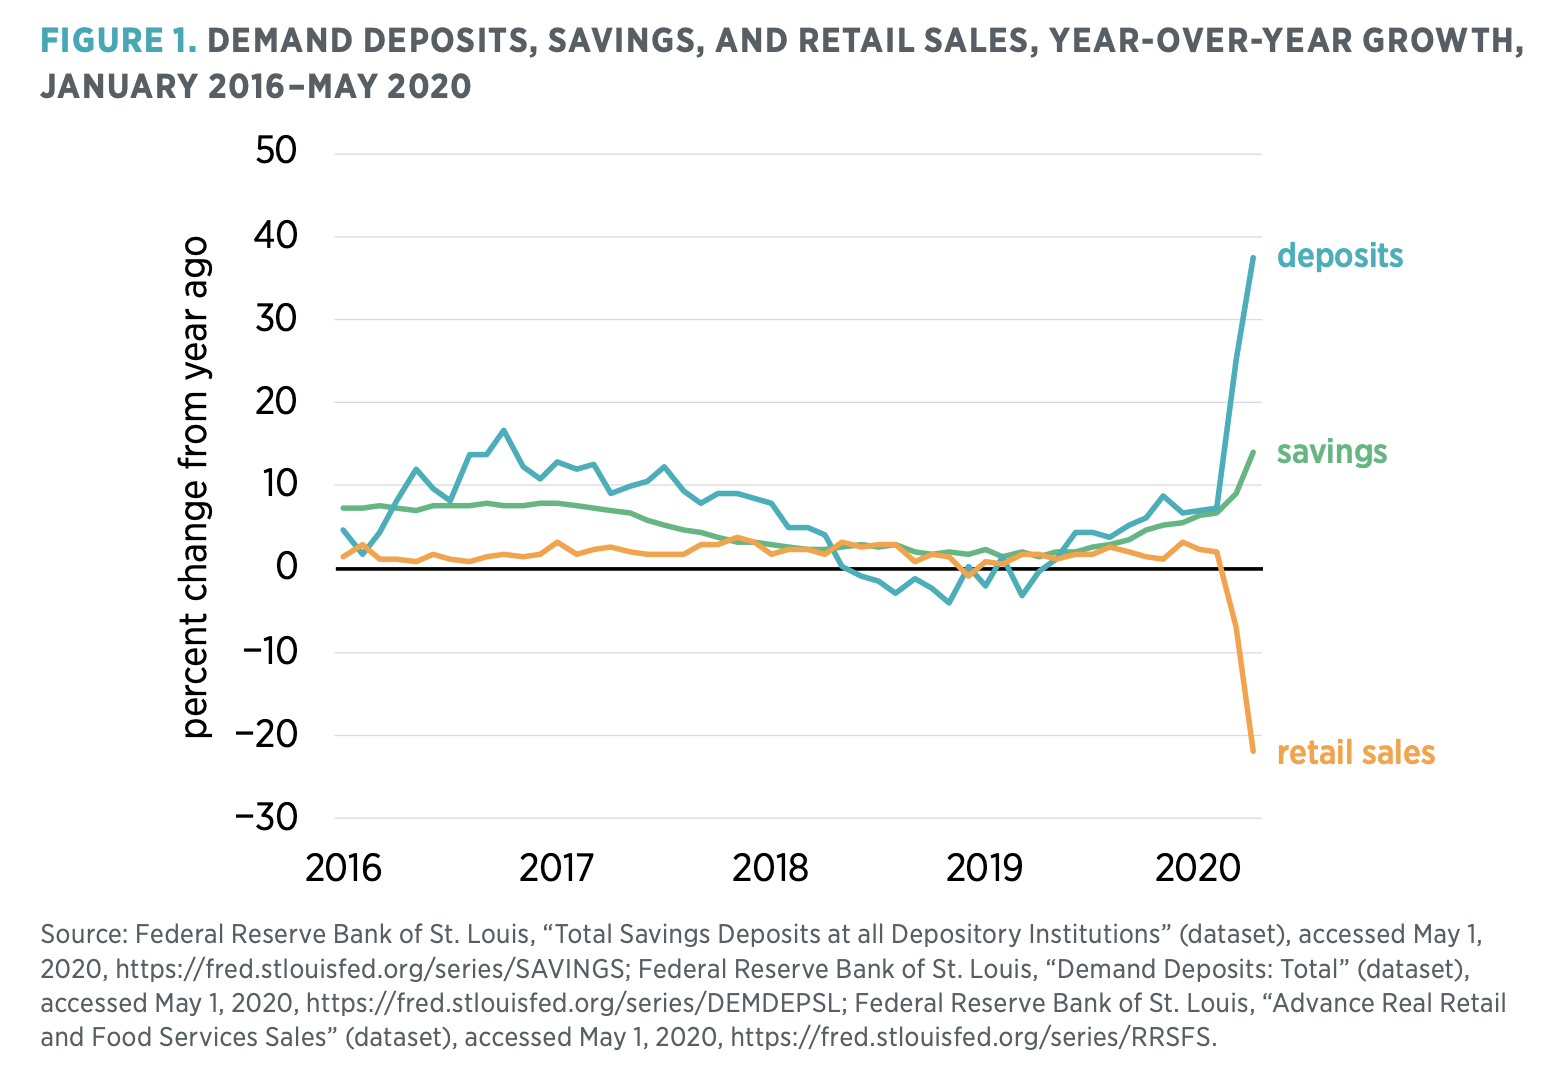 Figure 1. Demand Deposits, Savings, and Retail Sales, Year-Over-Year Growth, January 2016–May 2020